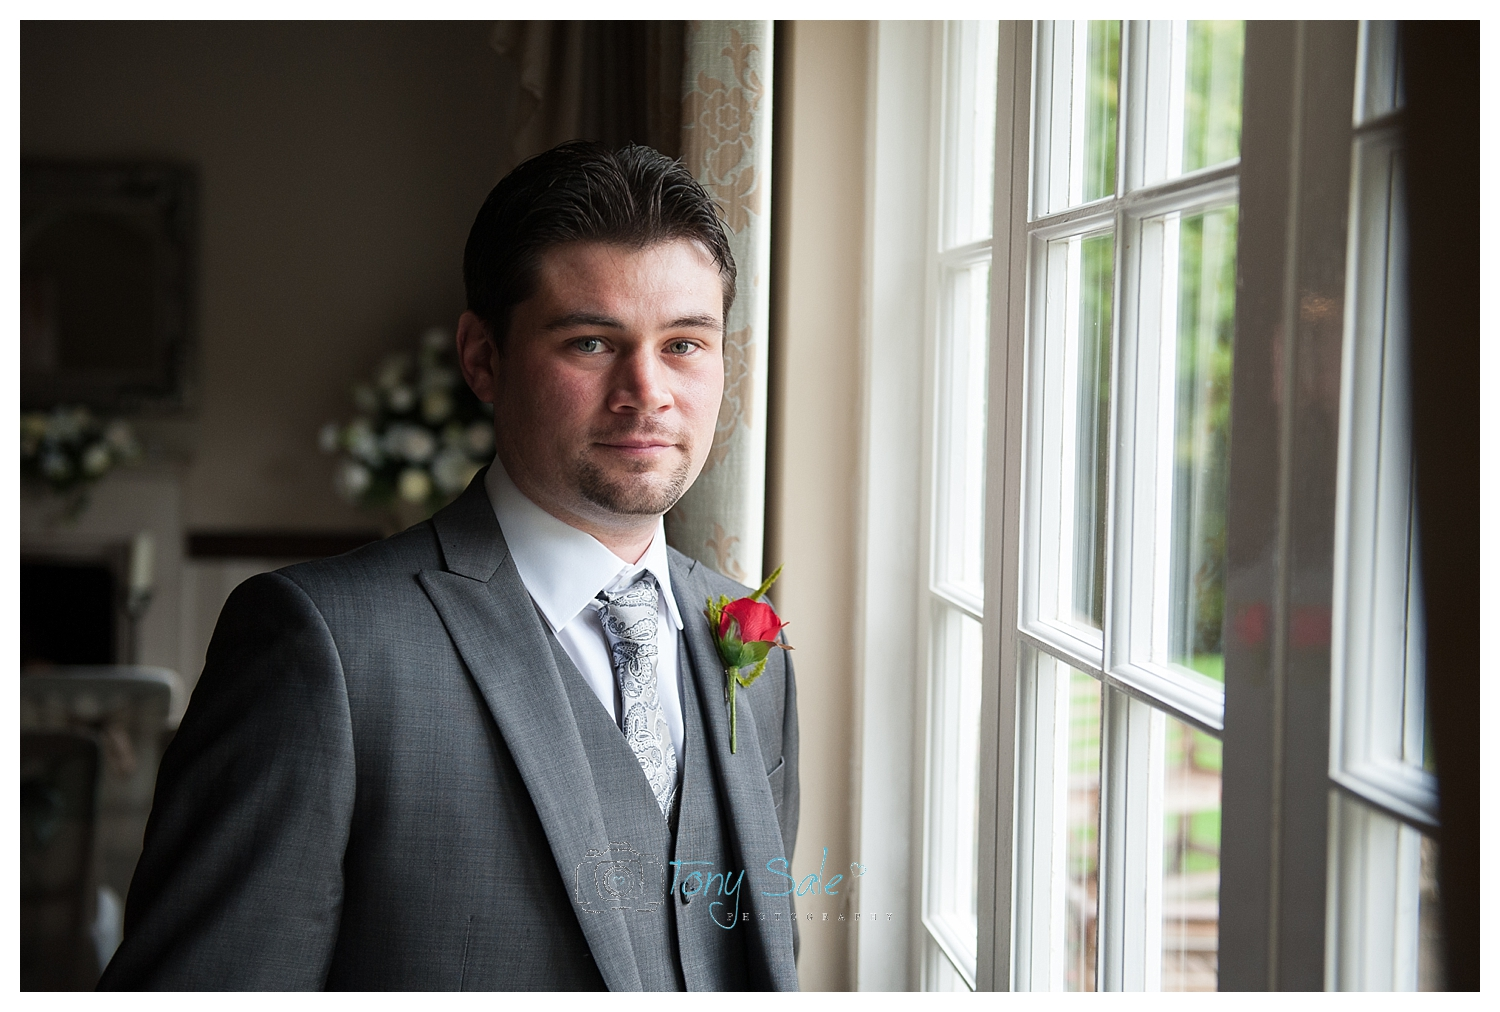 wedding-photography-newland-hall-chelmsford_004